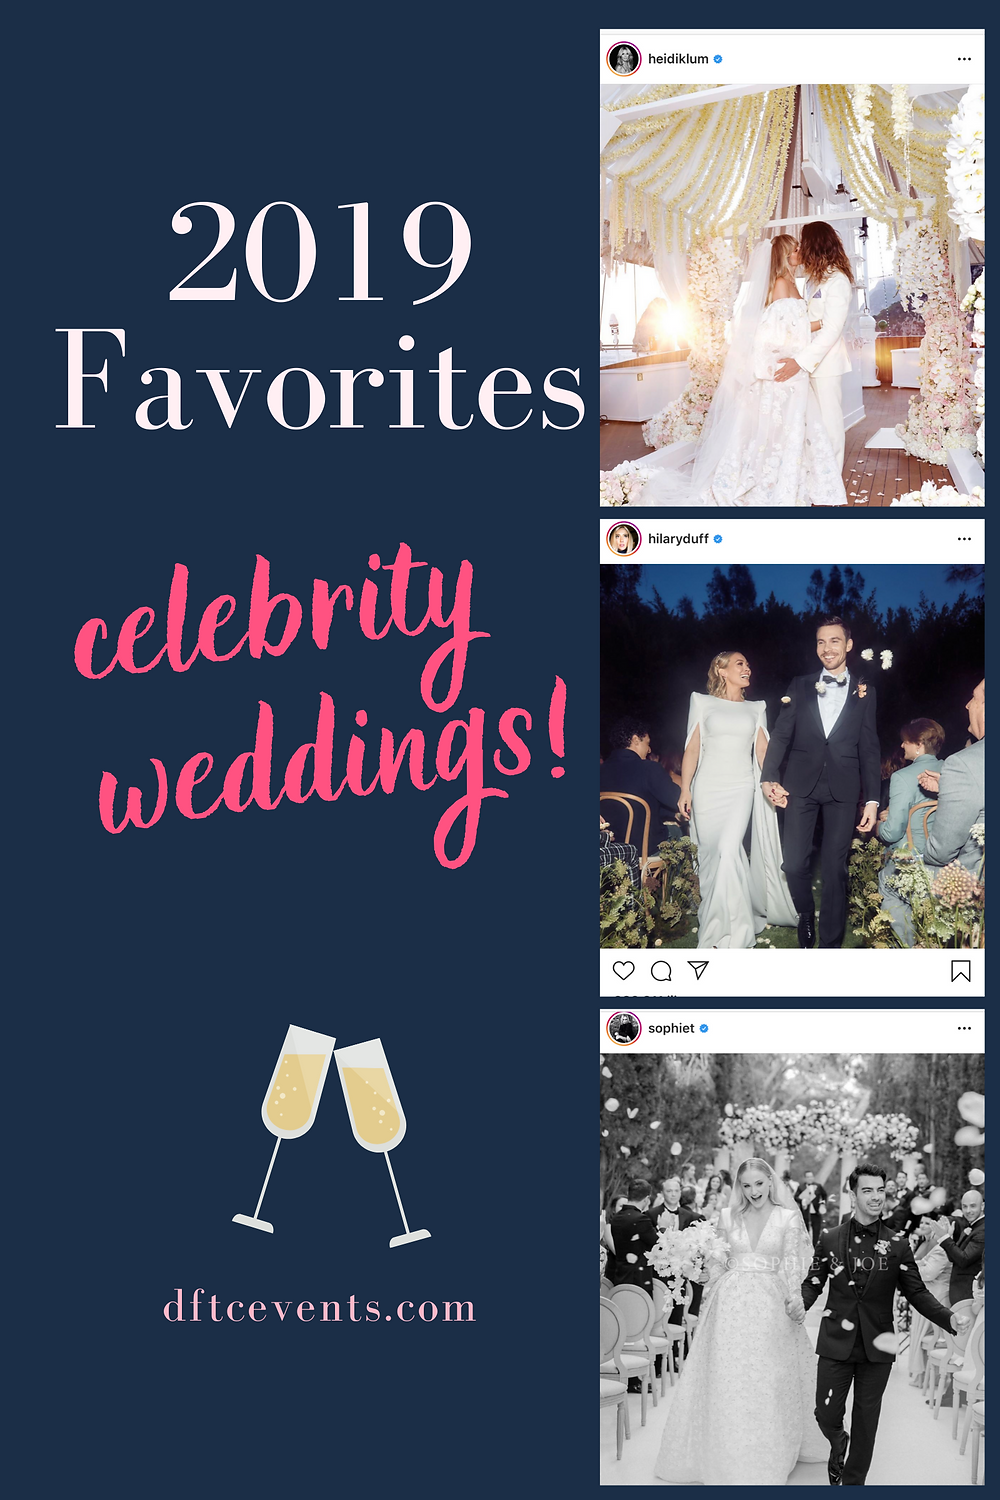 Our Favorite Celebrity Weddings of 2019